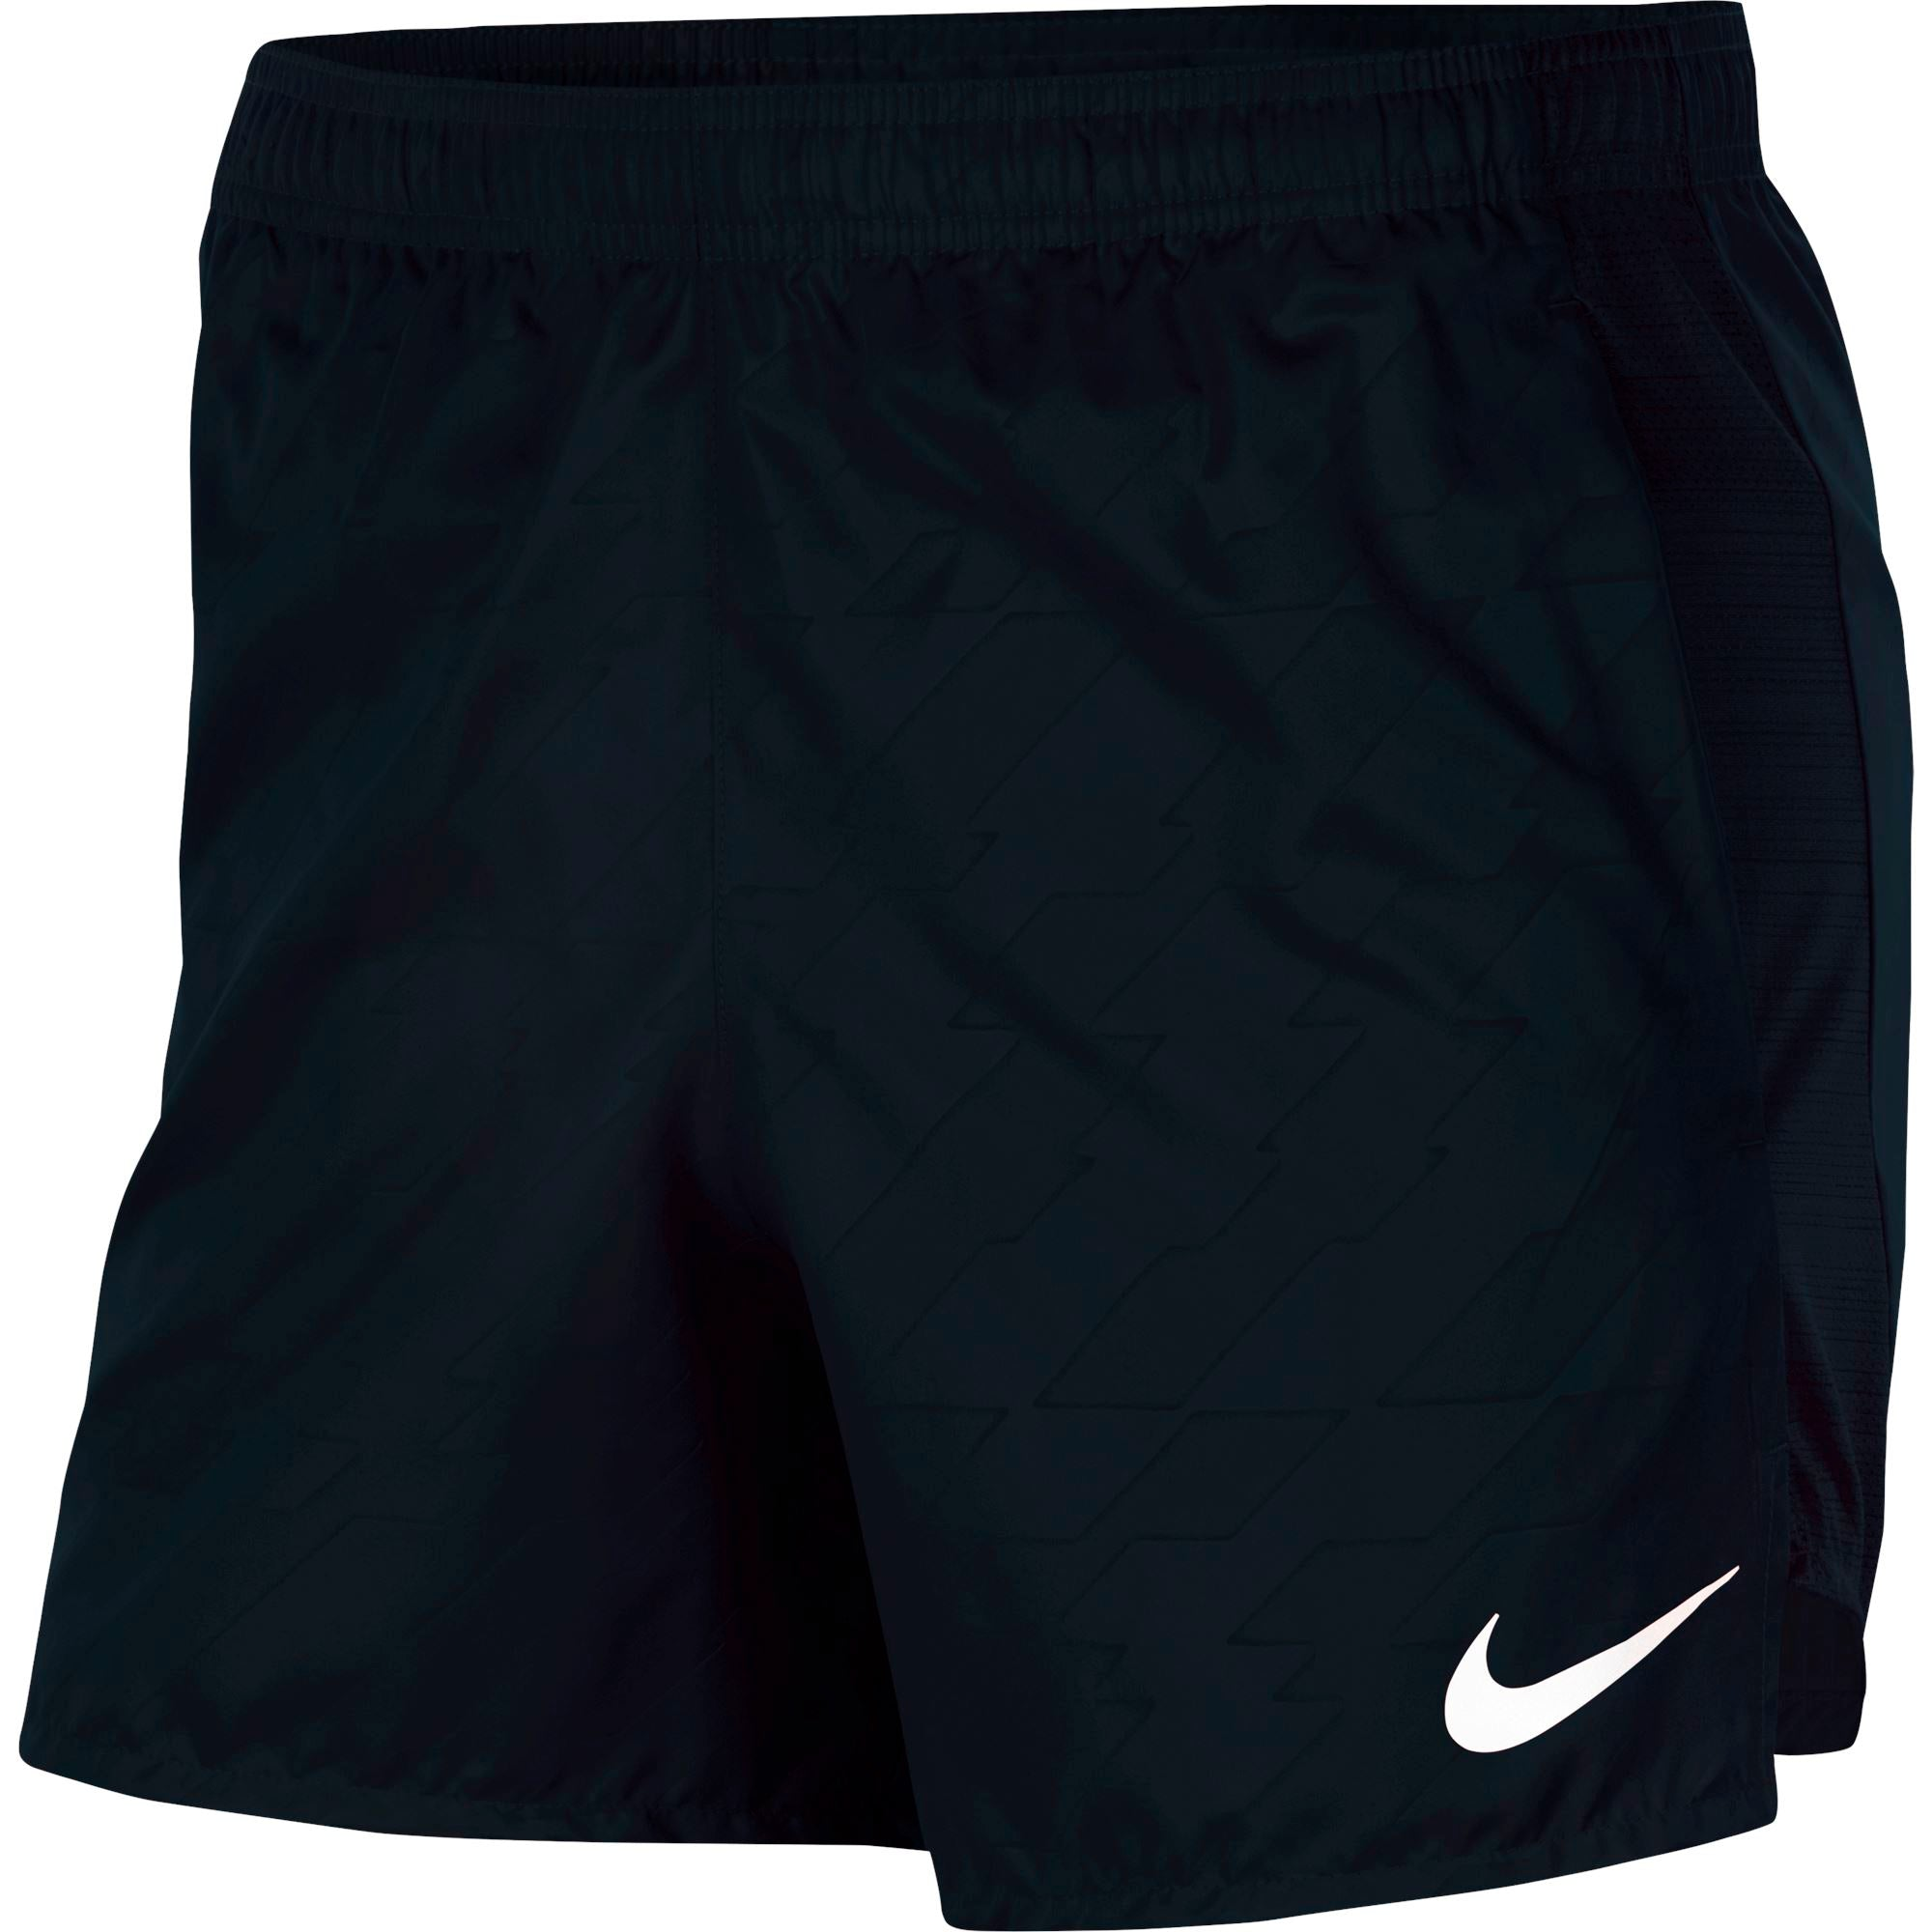 Nike Men's Challenger Future Fast Running Shorts - Black/Reflective Silver SP-ApparelShorts-Mens Nike